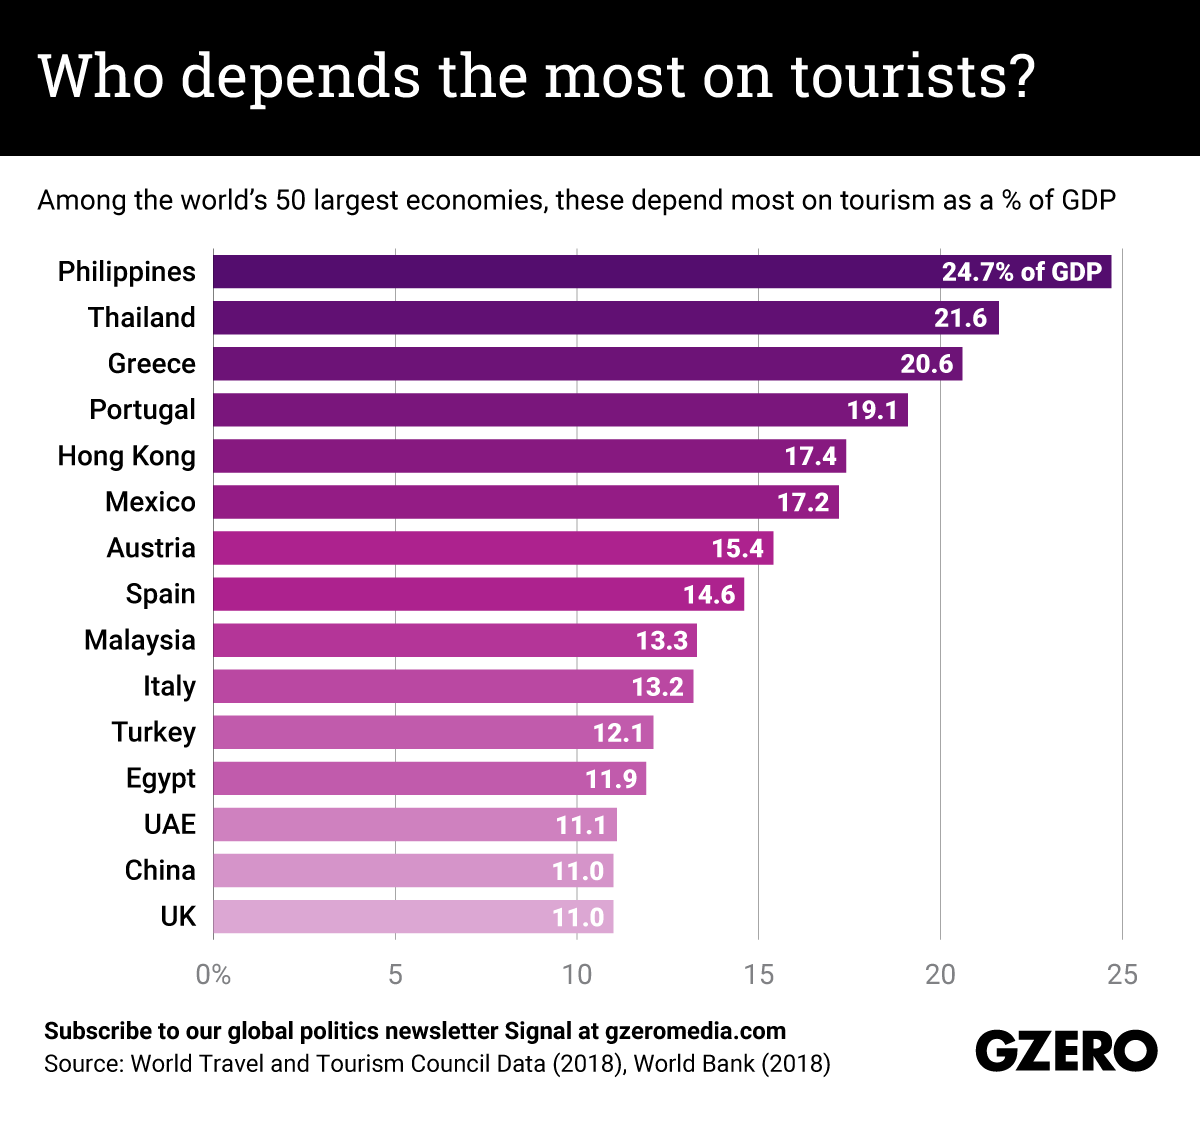 The Graphic Truth: Who depends the most on tourists?